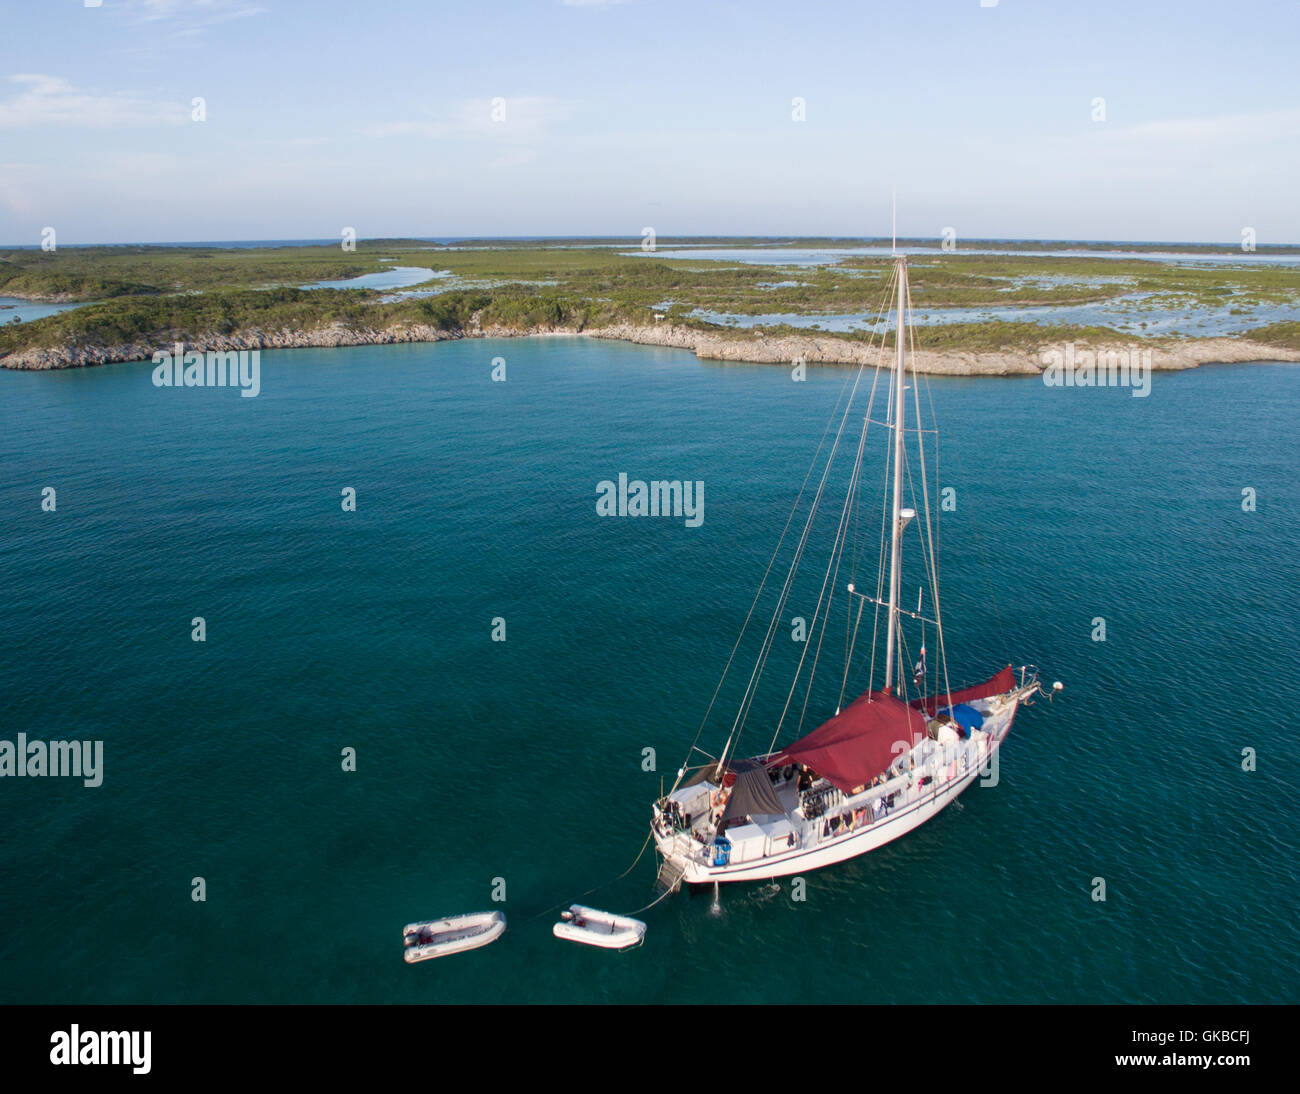 Aerial of a sailboat off the coast of shroud cay exuma cays aerial of a sailboat off the coast of shroud cay exuma cays bahamas islands sciox Images